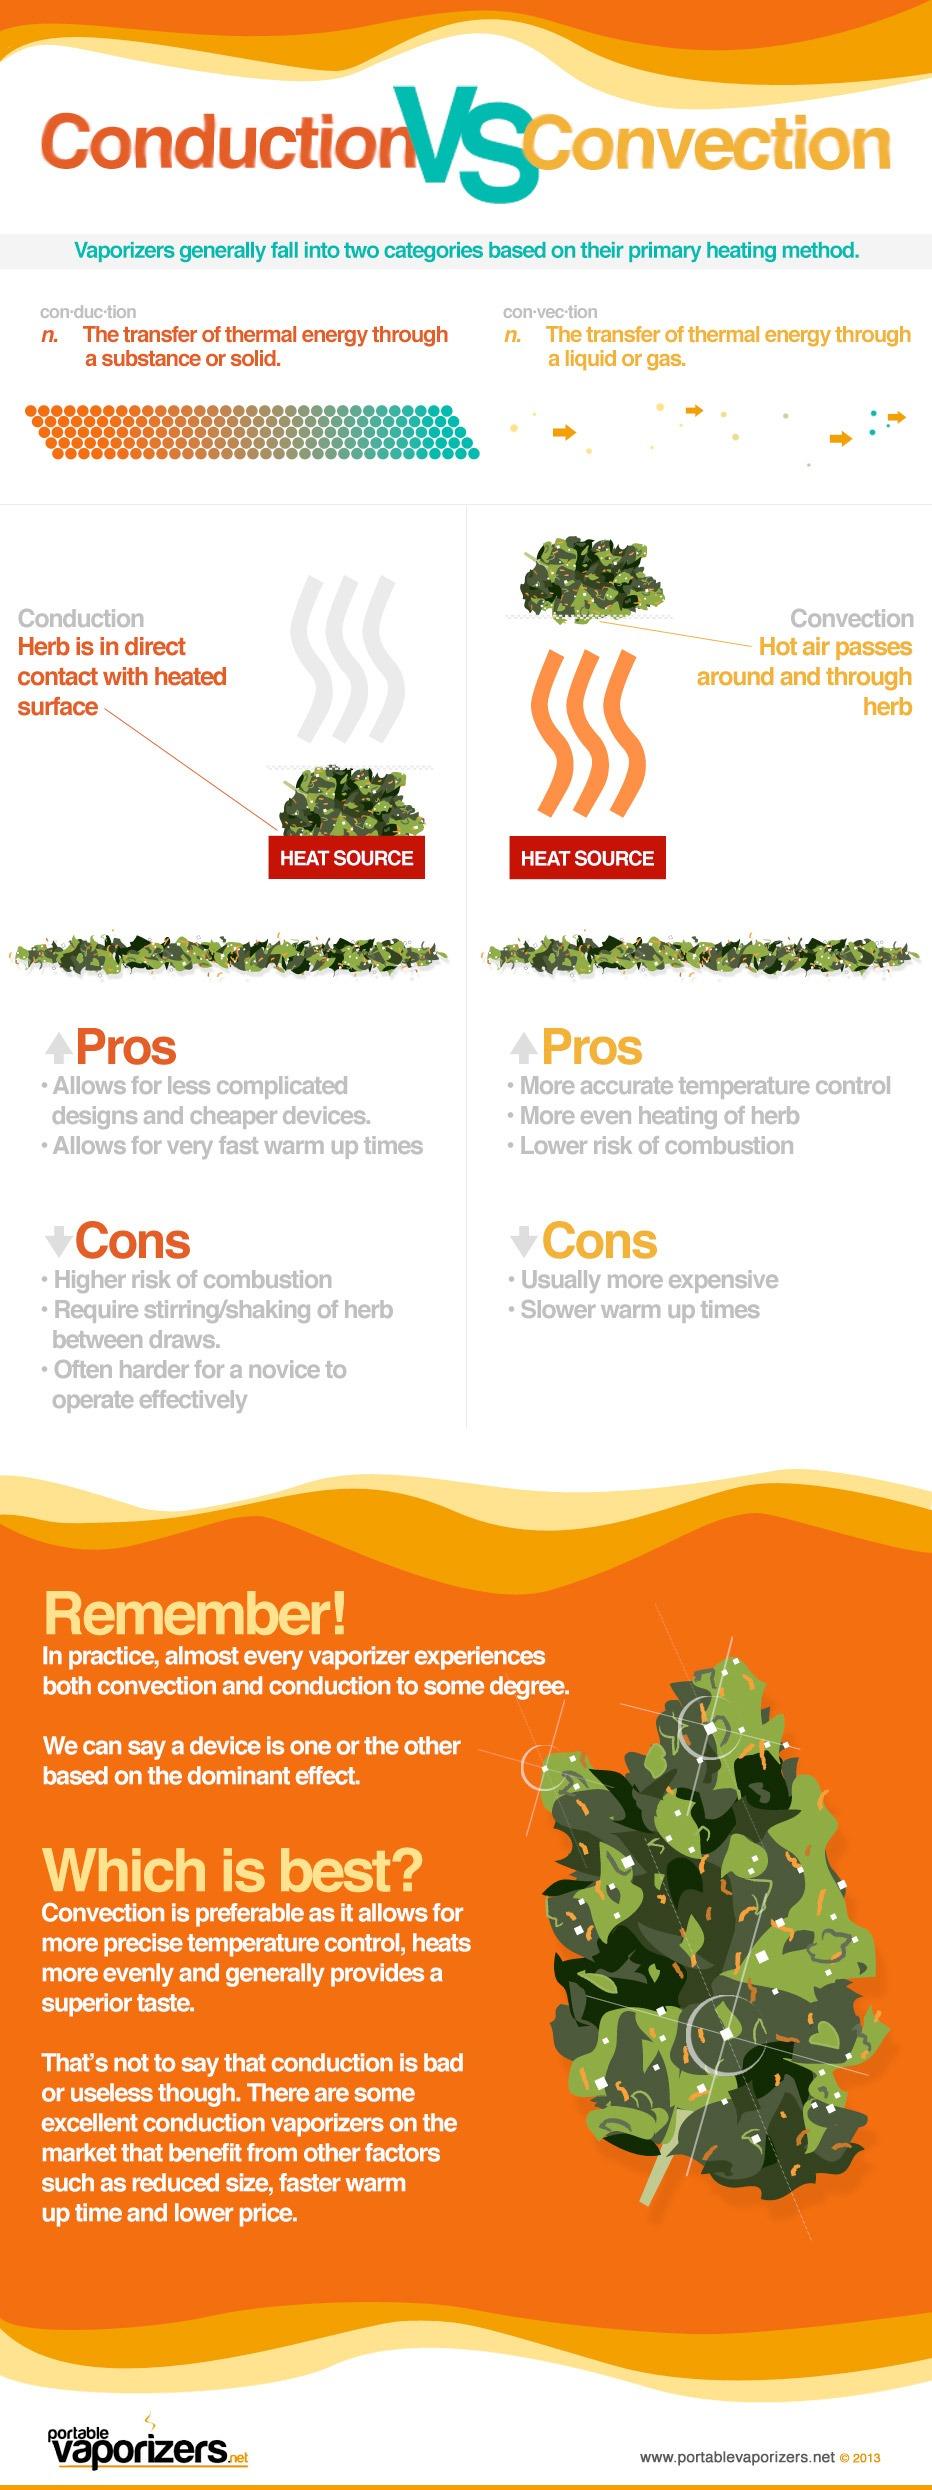 vaporizer-conduction-convection-infographic